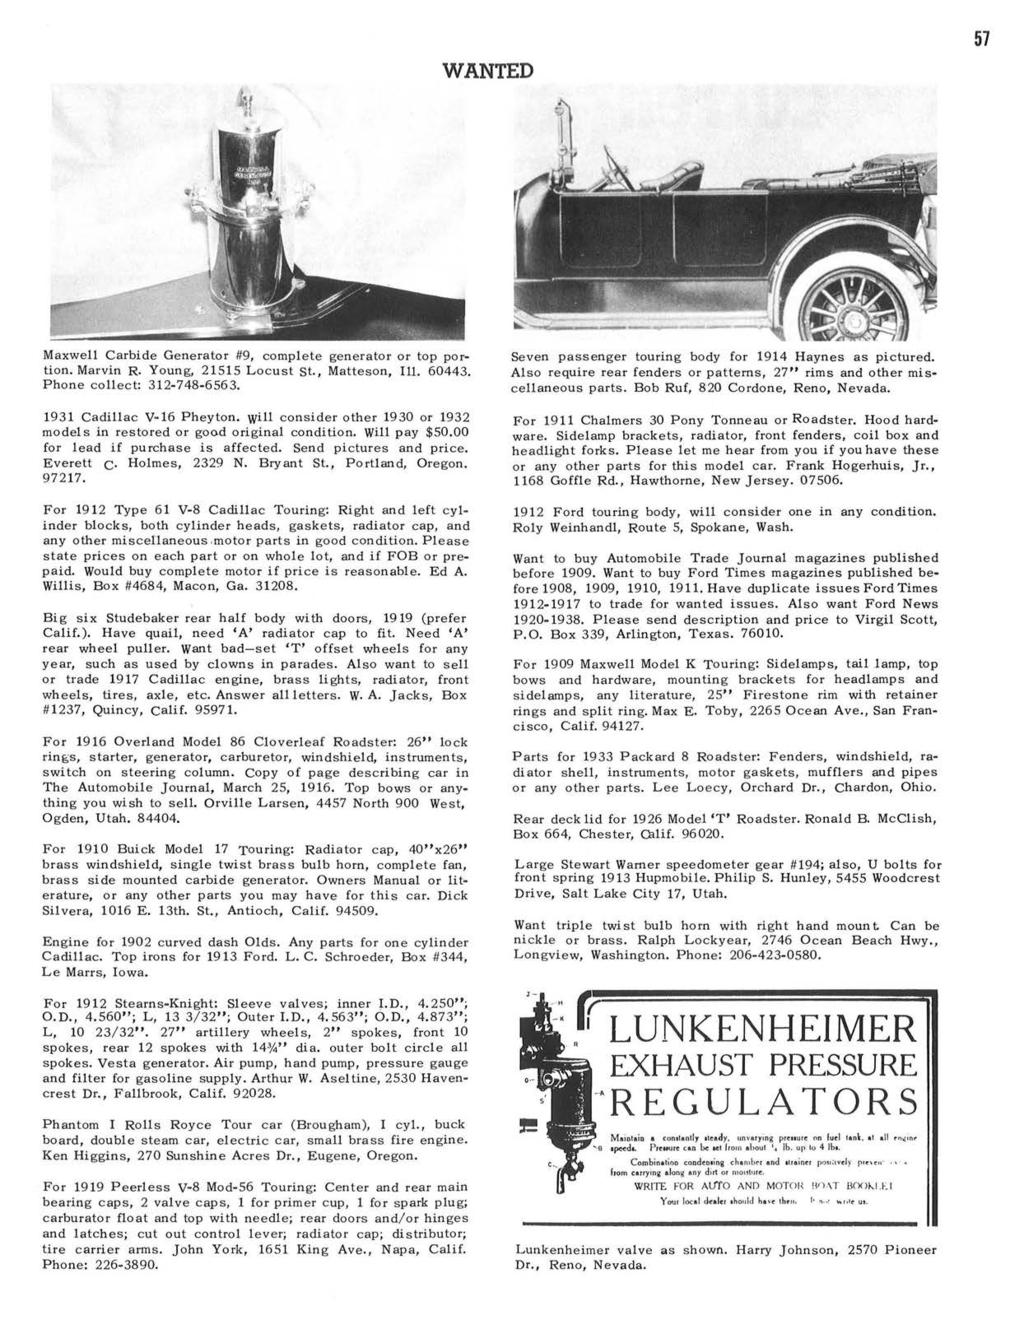 Horseless Carriage Club of America Founded in Los Angeles